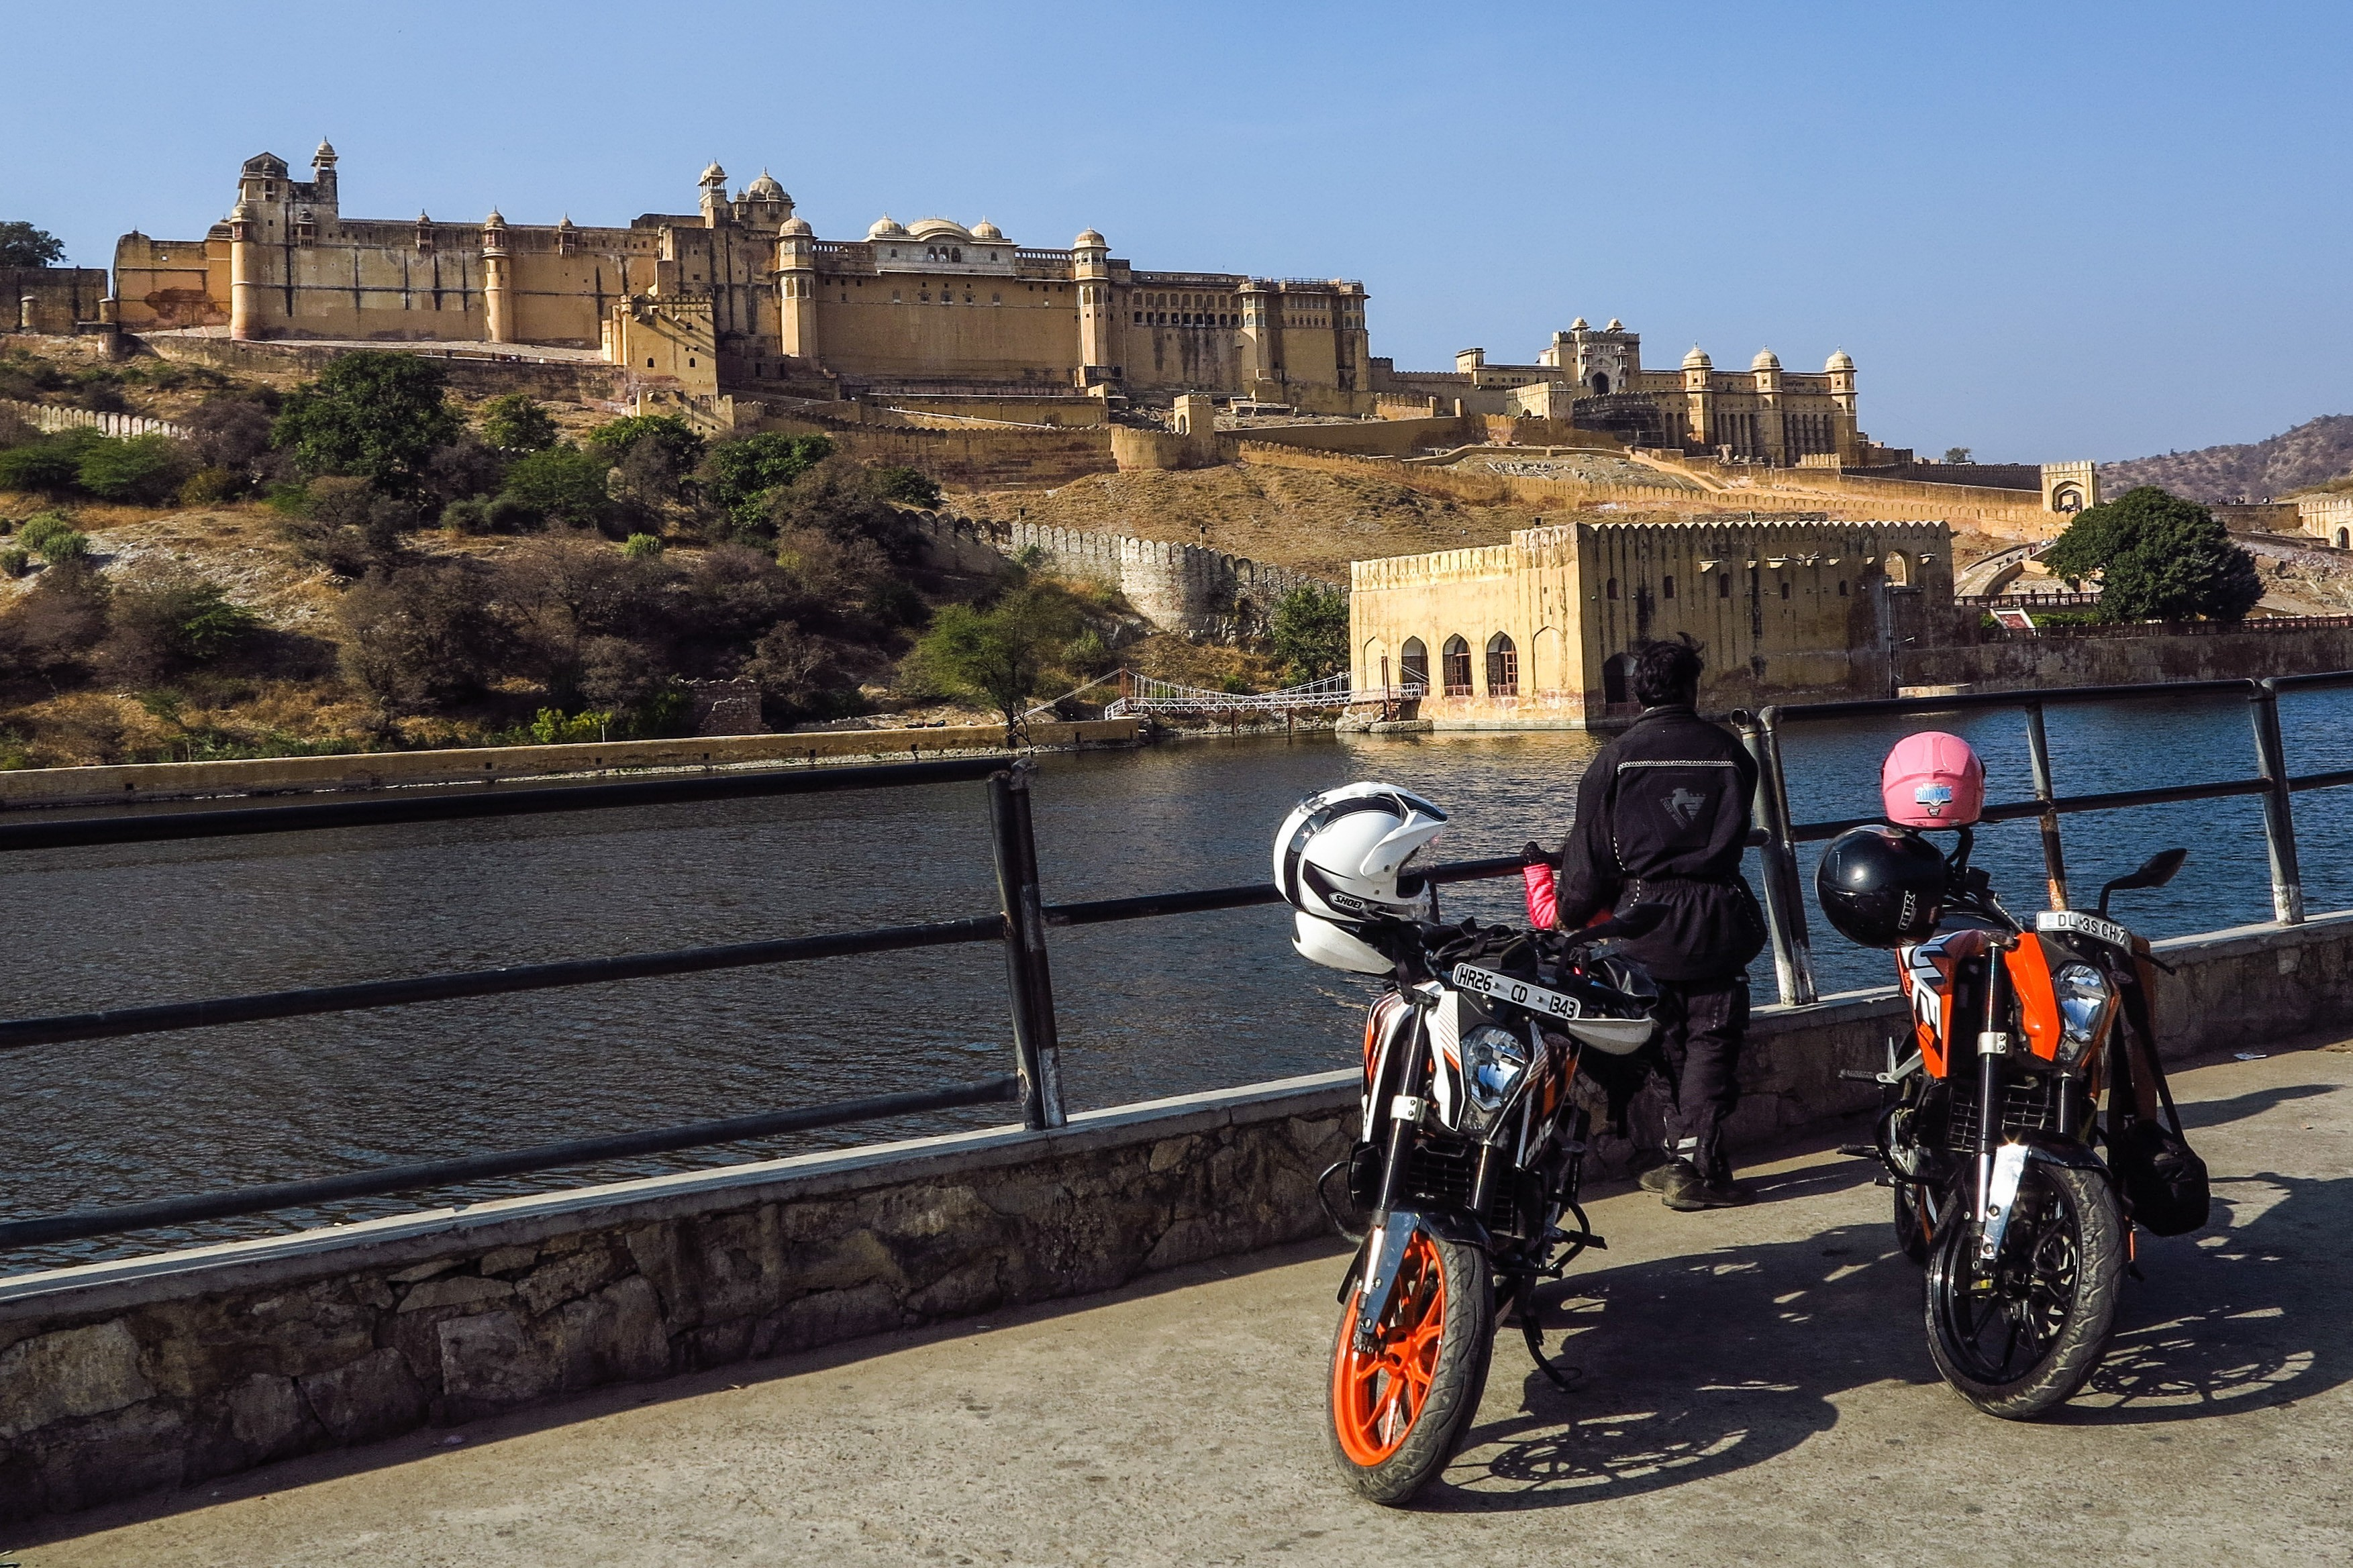 India motorcycle tours with Motoasia. Ride amongst the palaces of the Indian region of Rajasthan with our adventure tour in the land of the Maharajas.